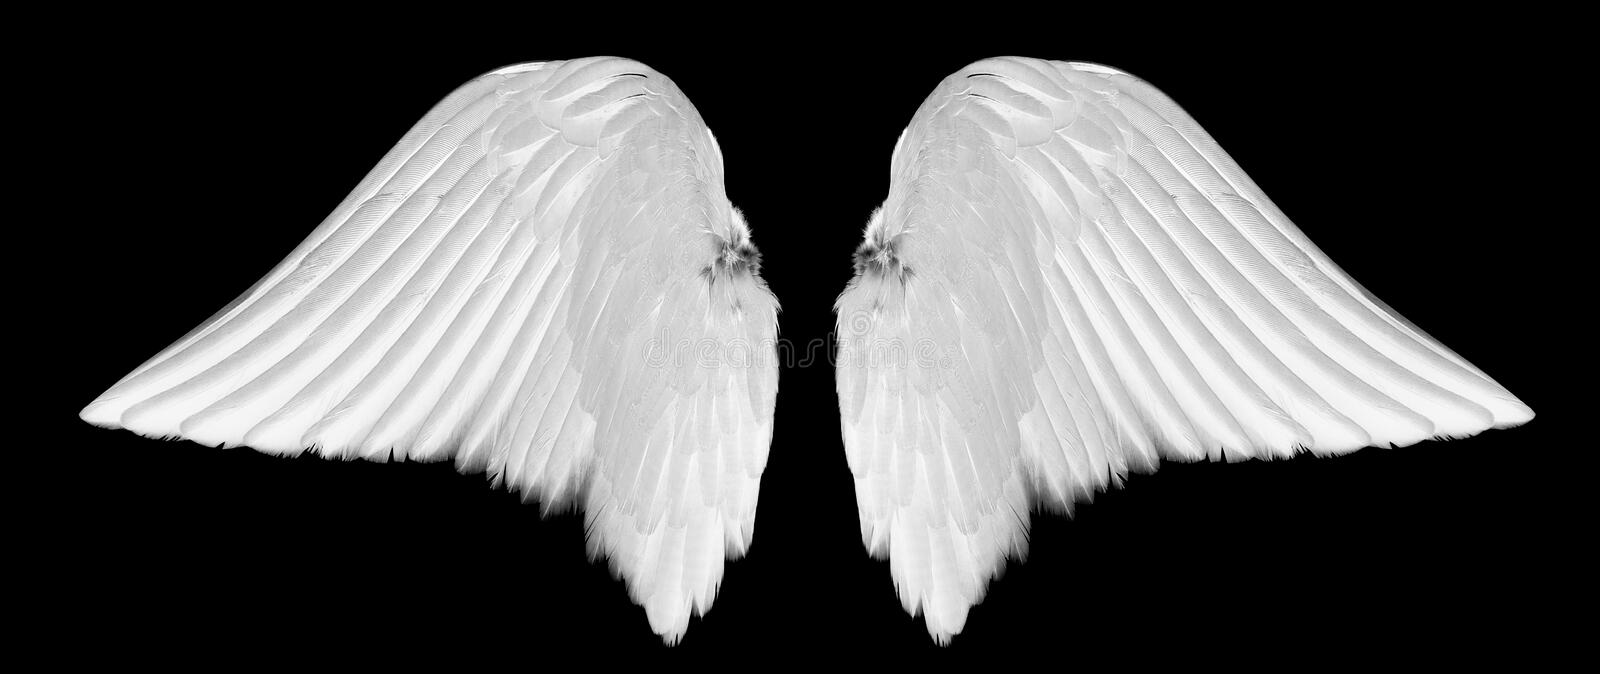 White angel wings royalty free stock photo